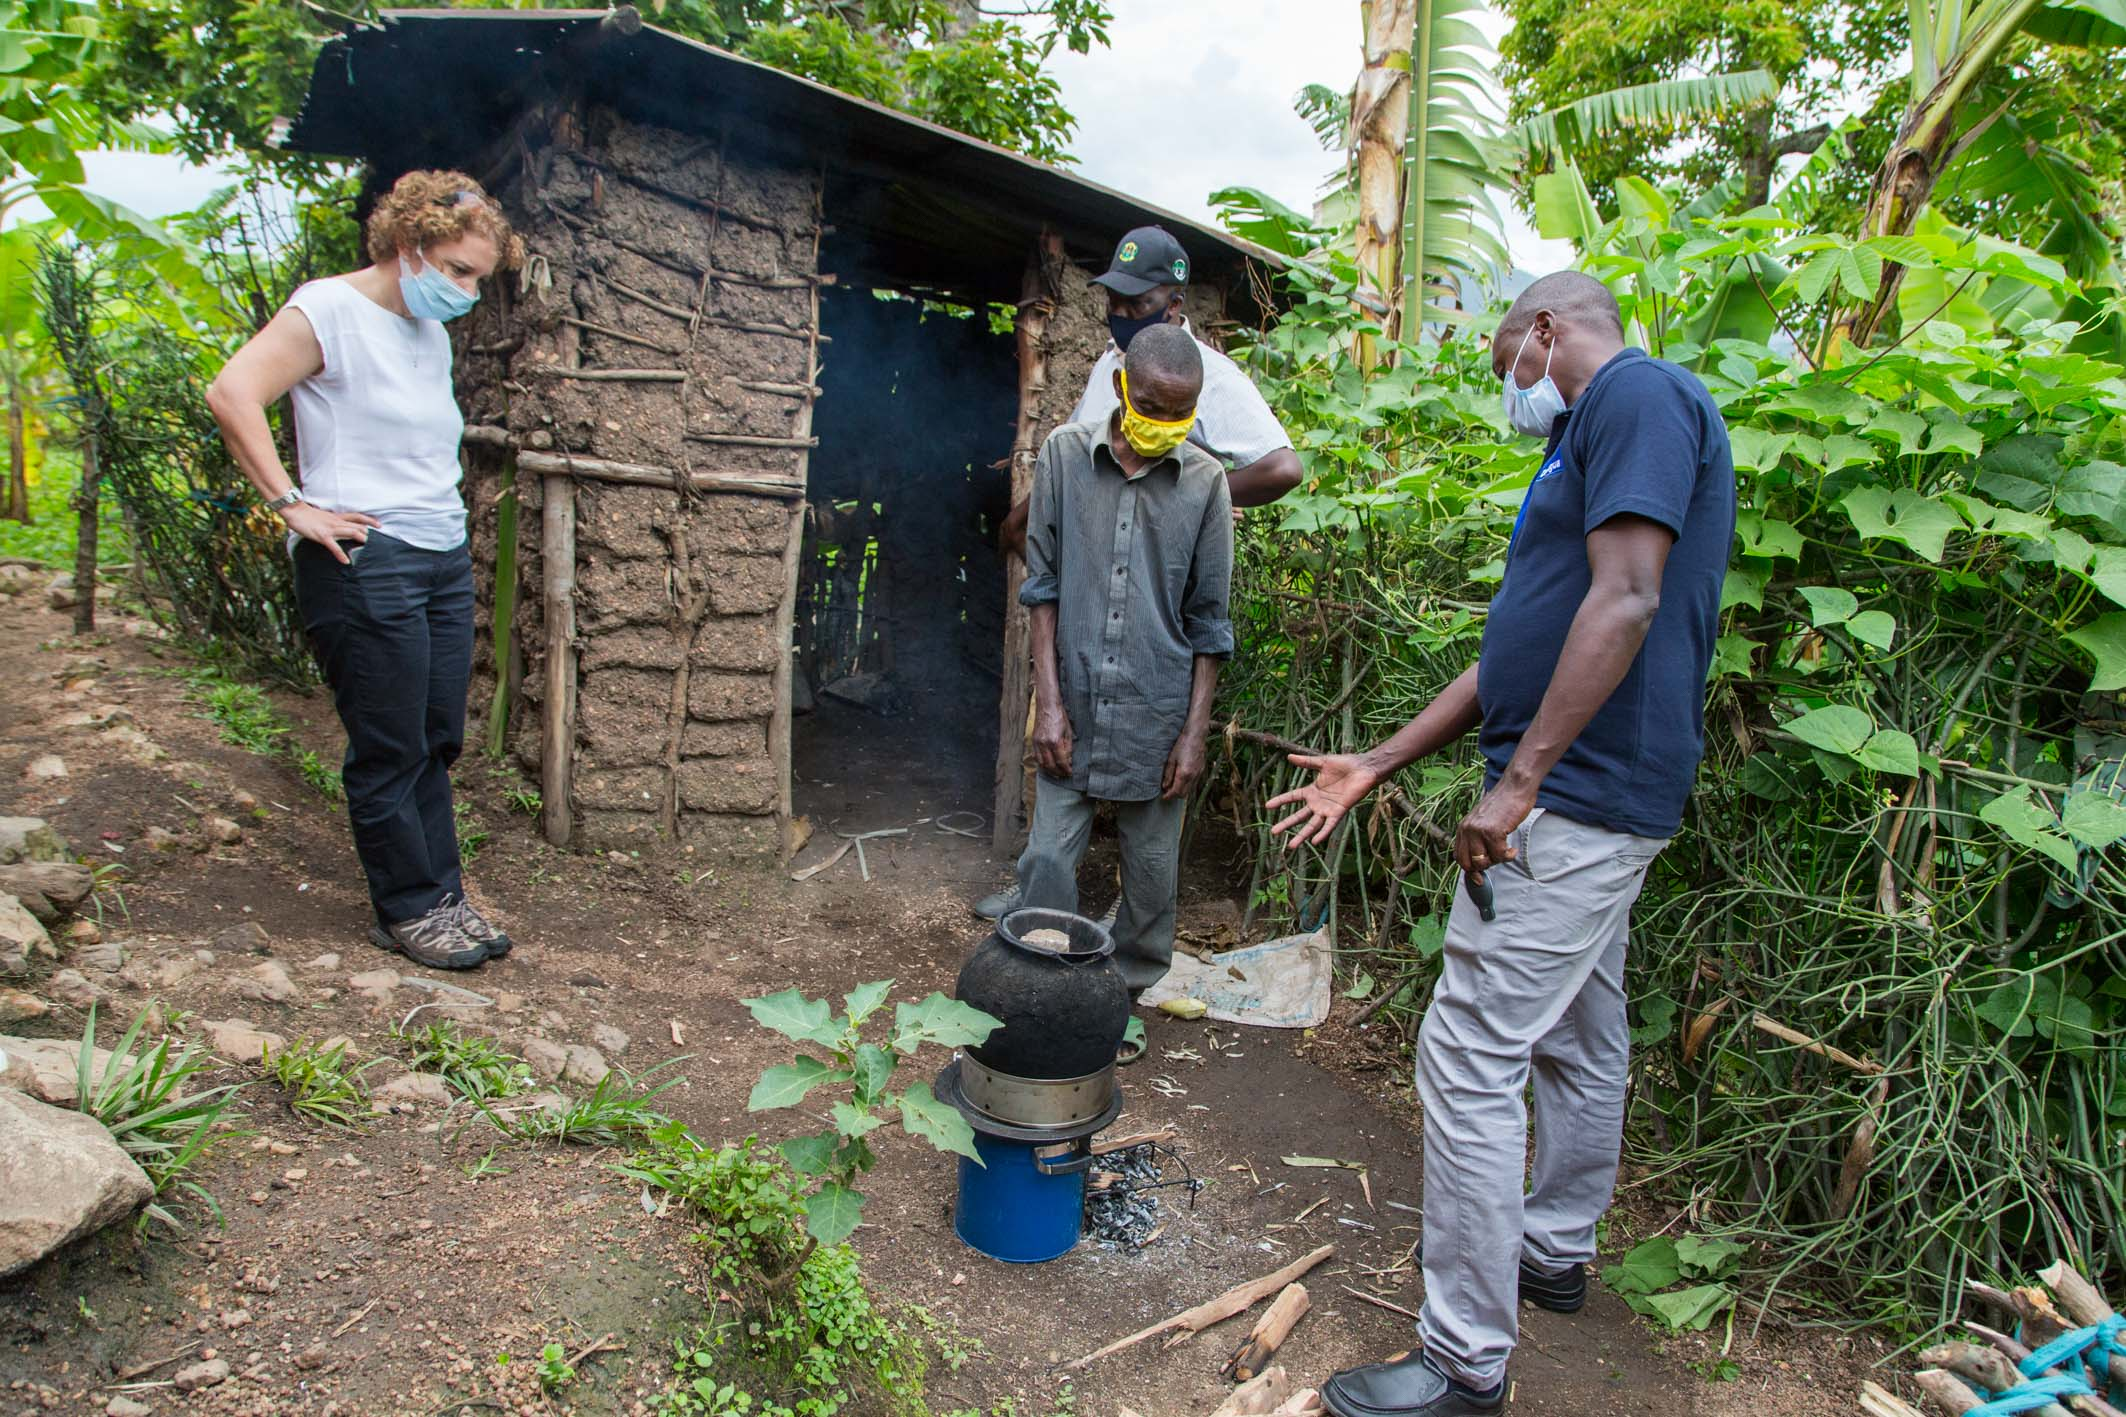 Jo Lomas visited a village to see the stove in action.